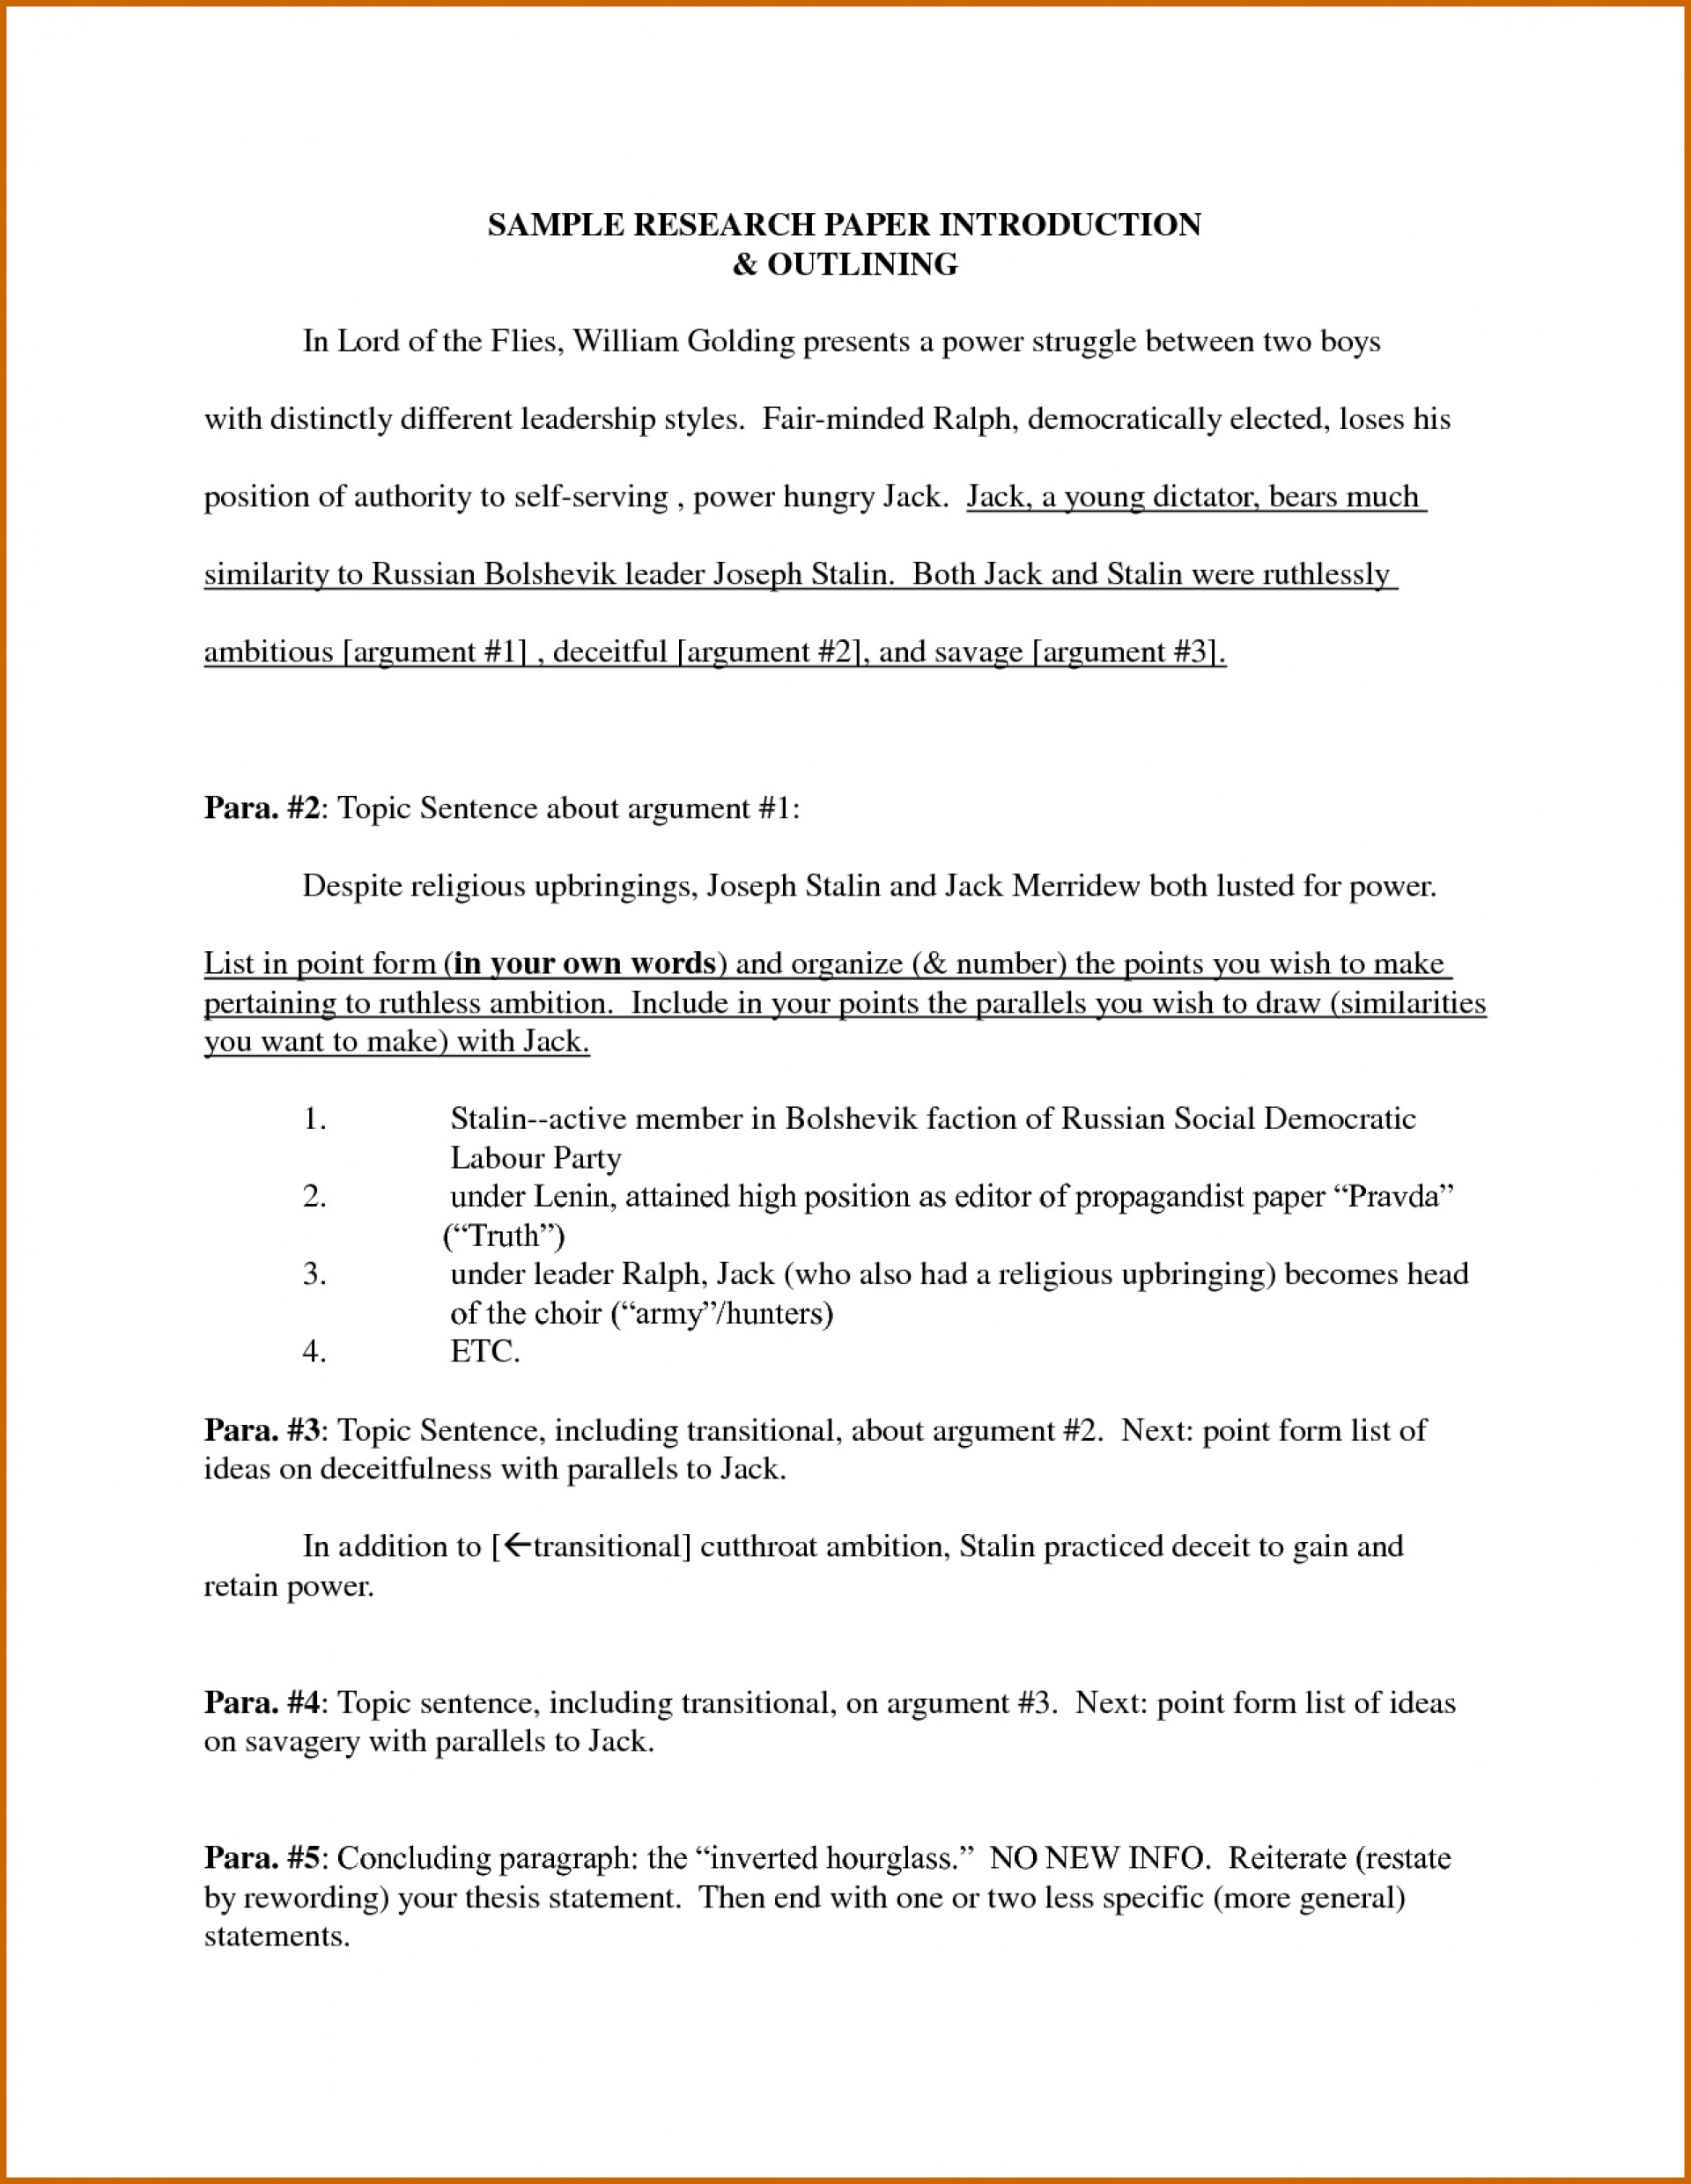 011 How To Make Research Paper Introduction For Term Sample Fascinating A In Tagalog An Effective Example 1920